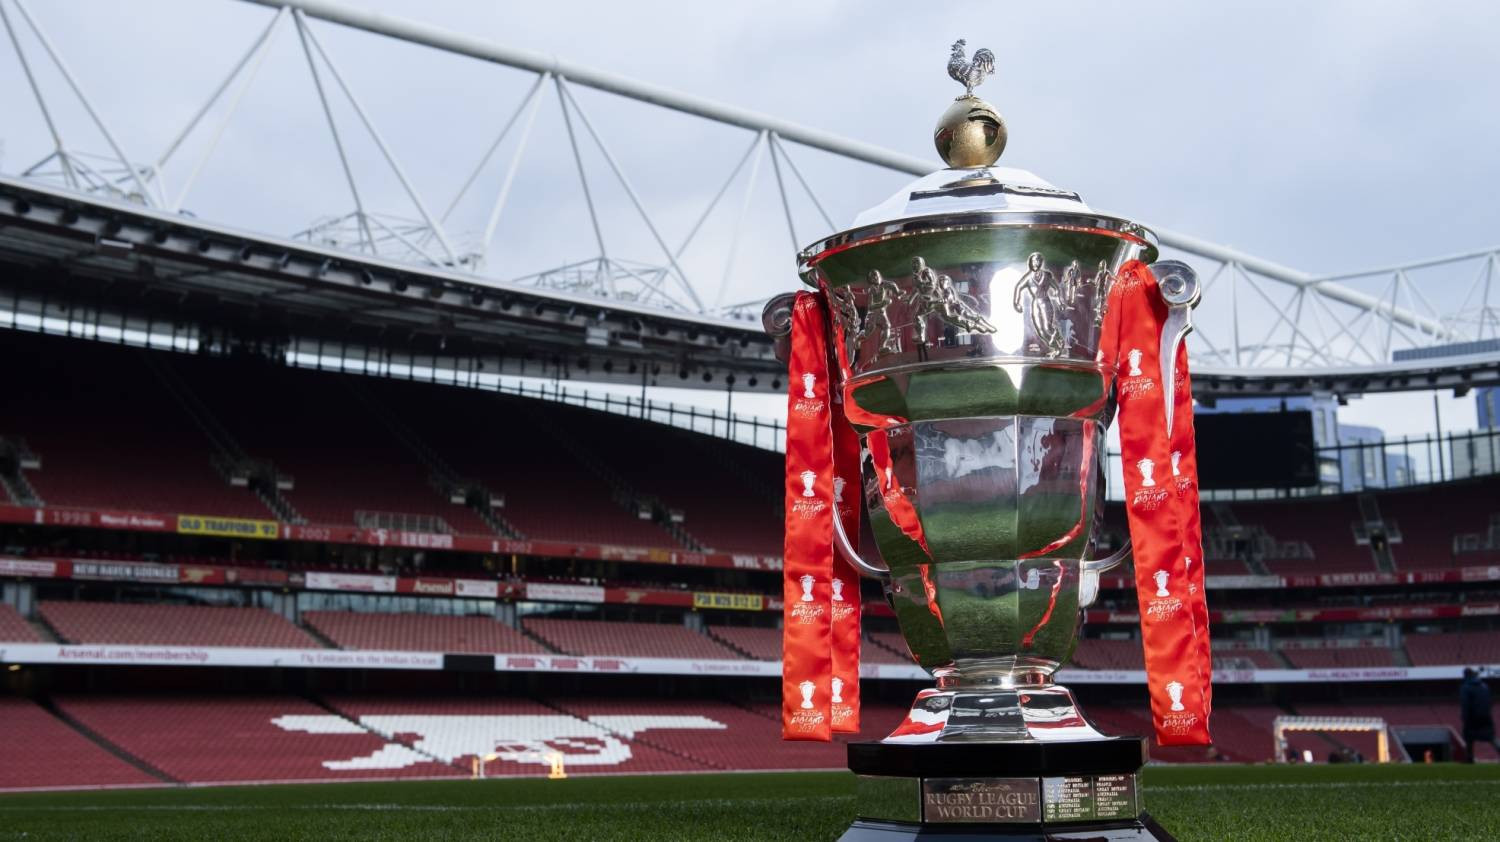 Rugby League World Cup partners with social care charity to support communities